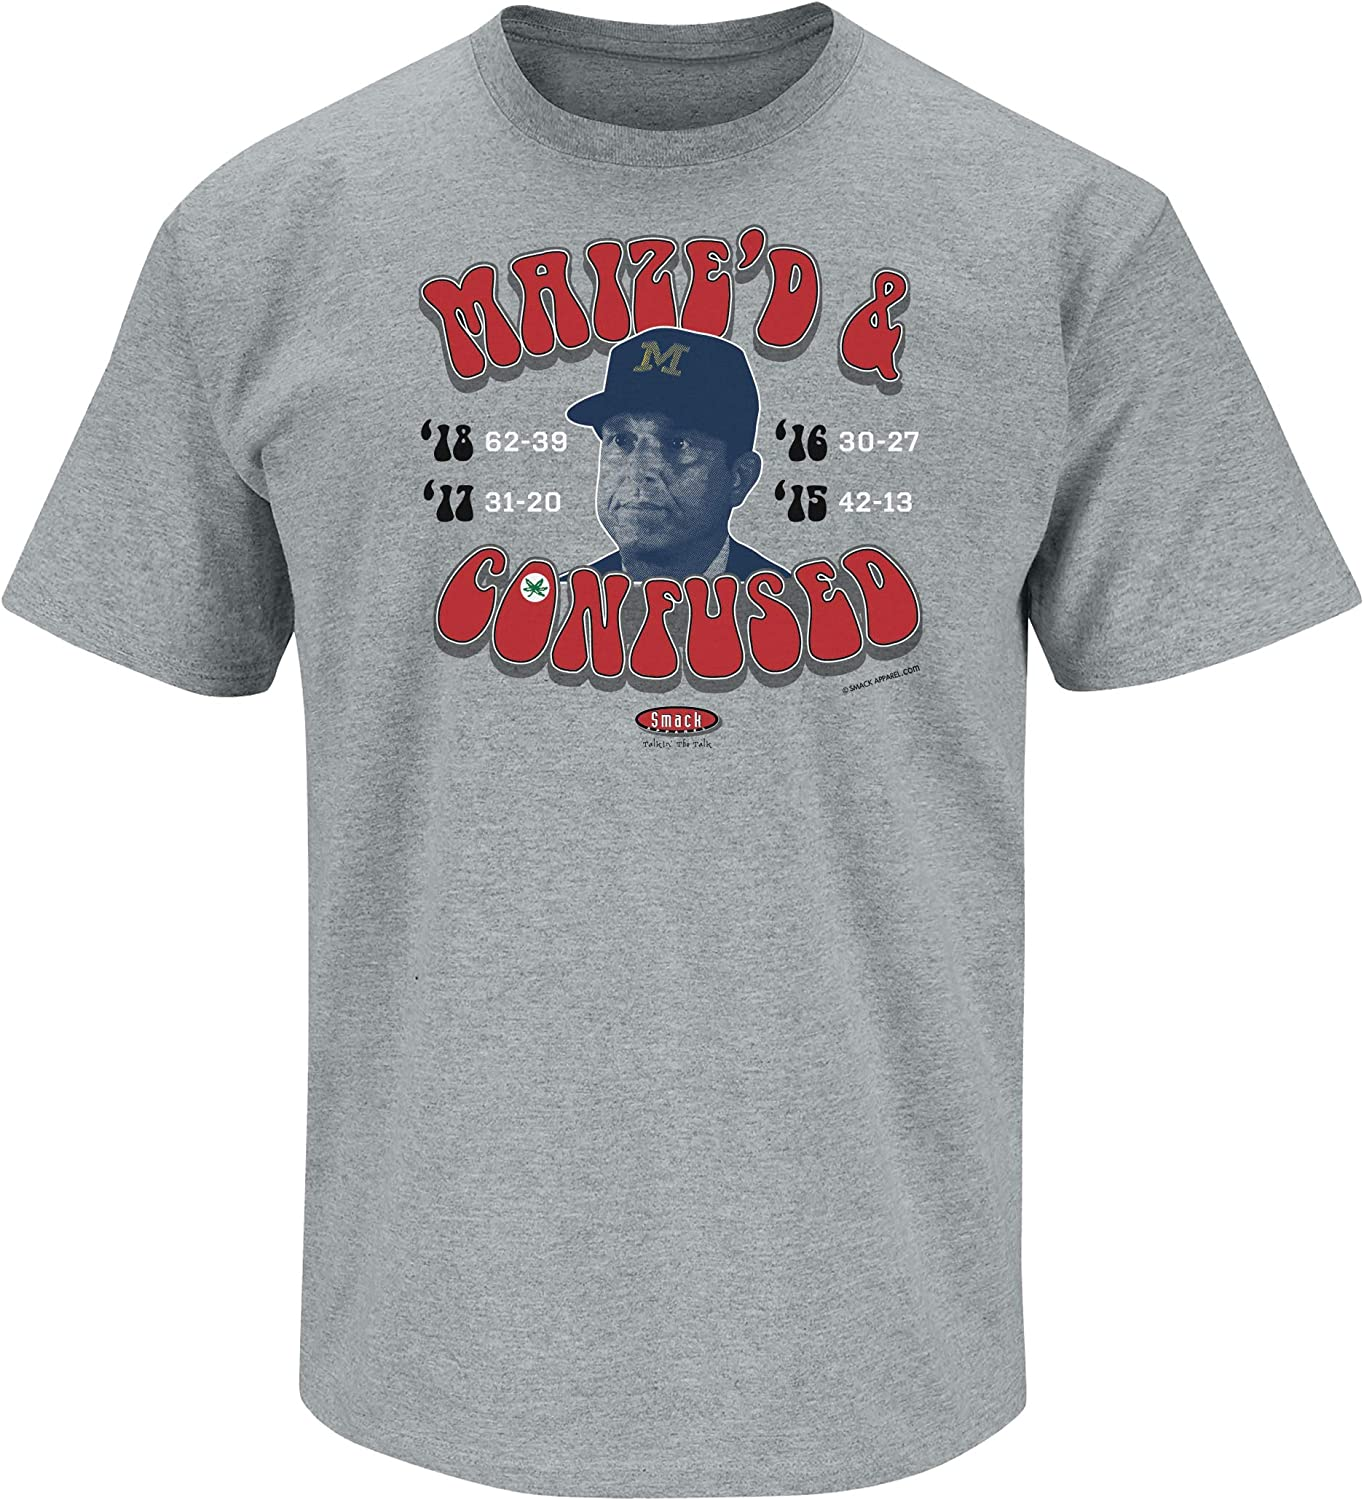 Smack Apparel Ohio State Football Fans Sm-5X Maized /& Confused Grey T-Shirt